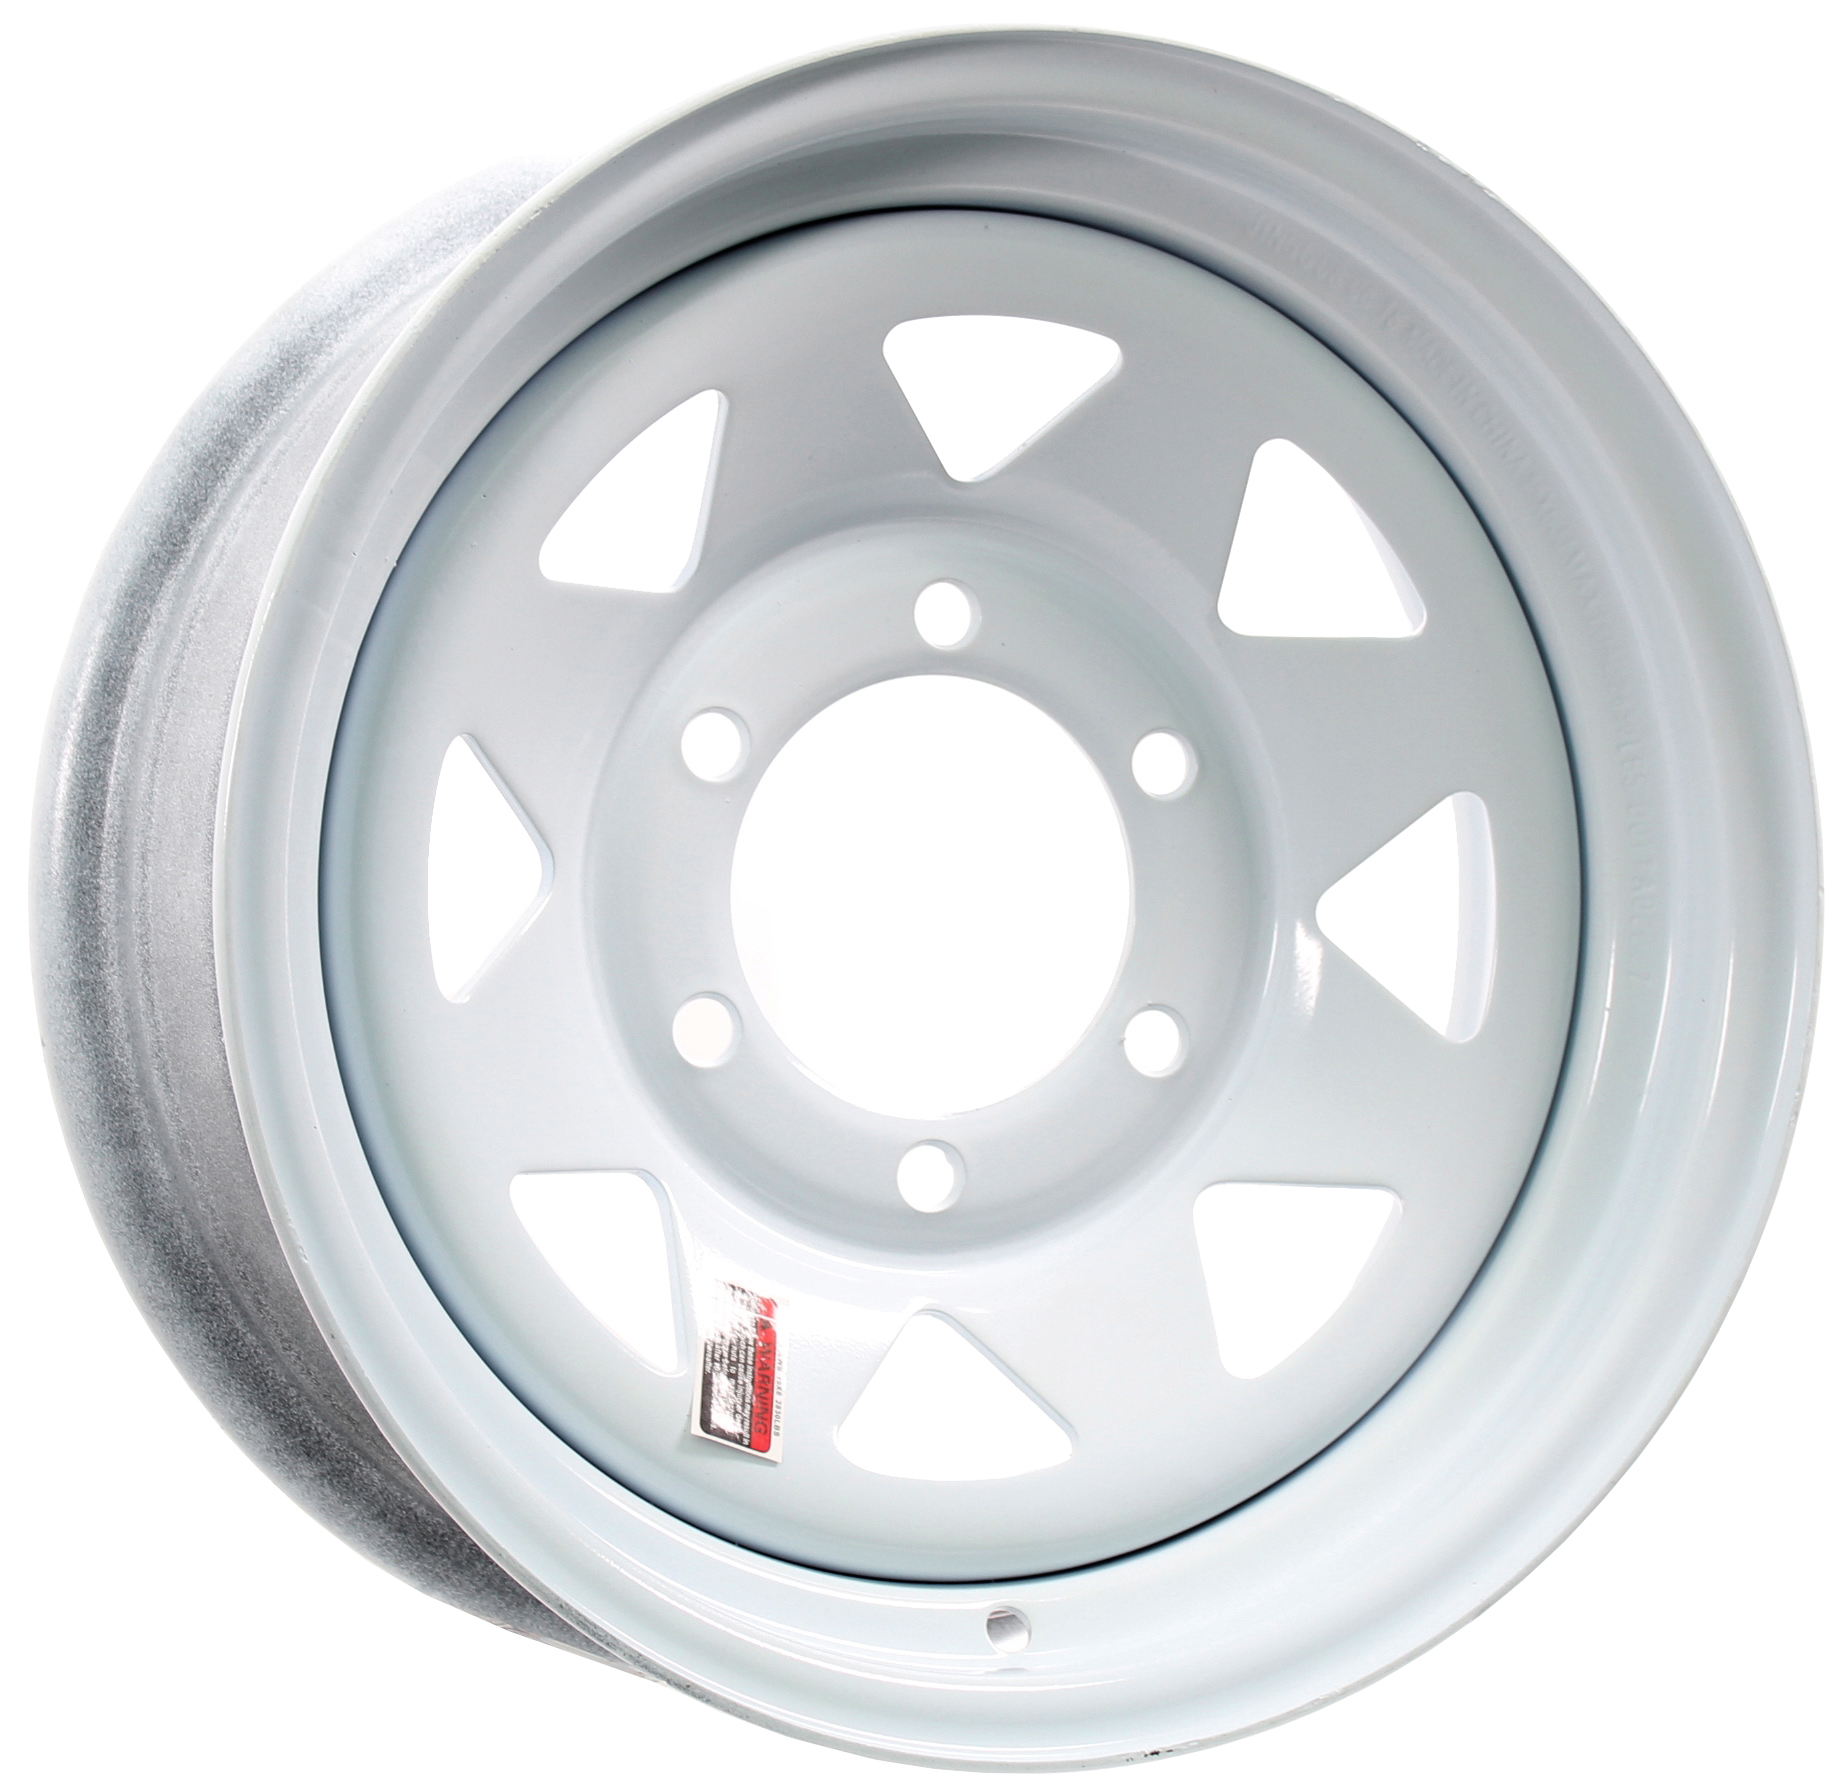 15x6 6-Lug White Spoke Steel Trailer Wheel Image